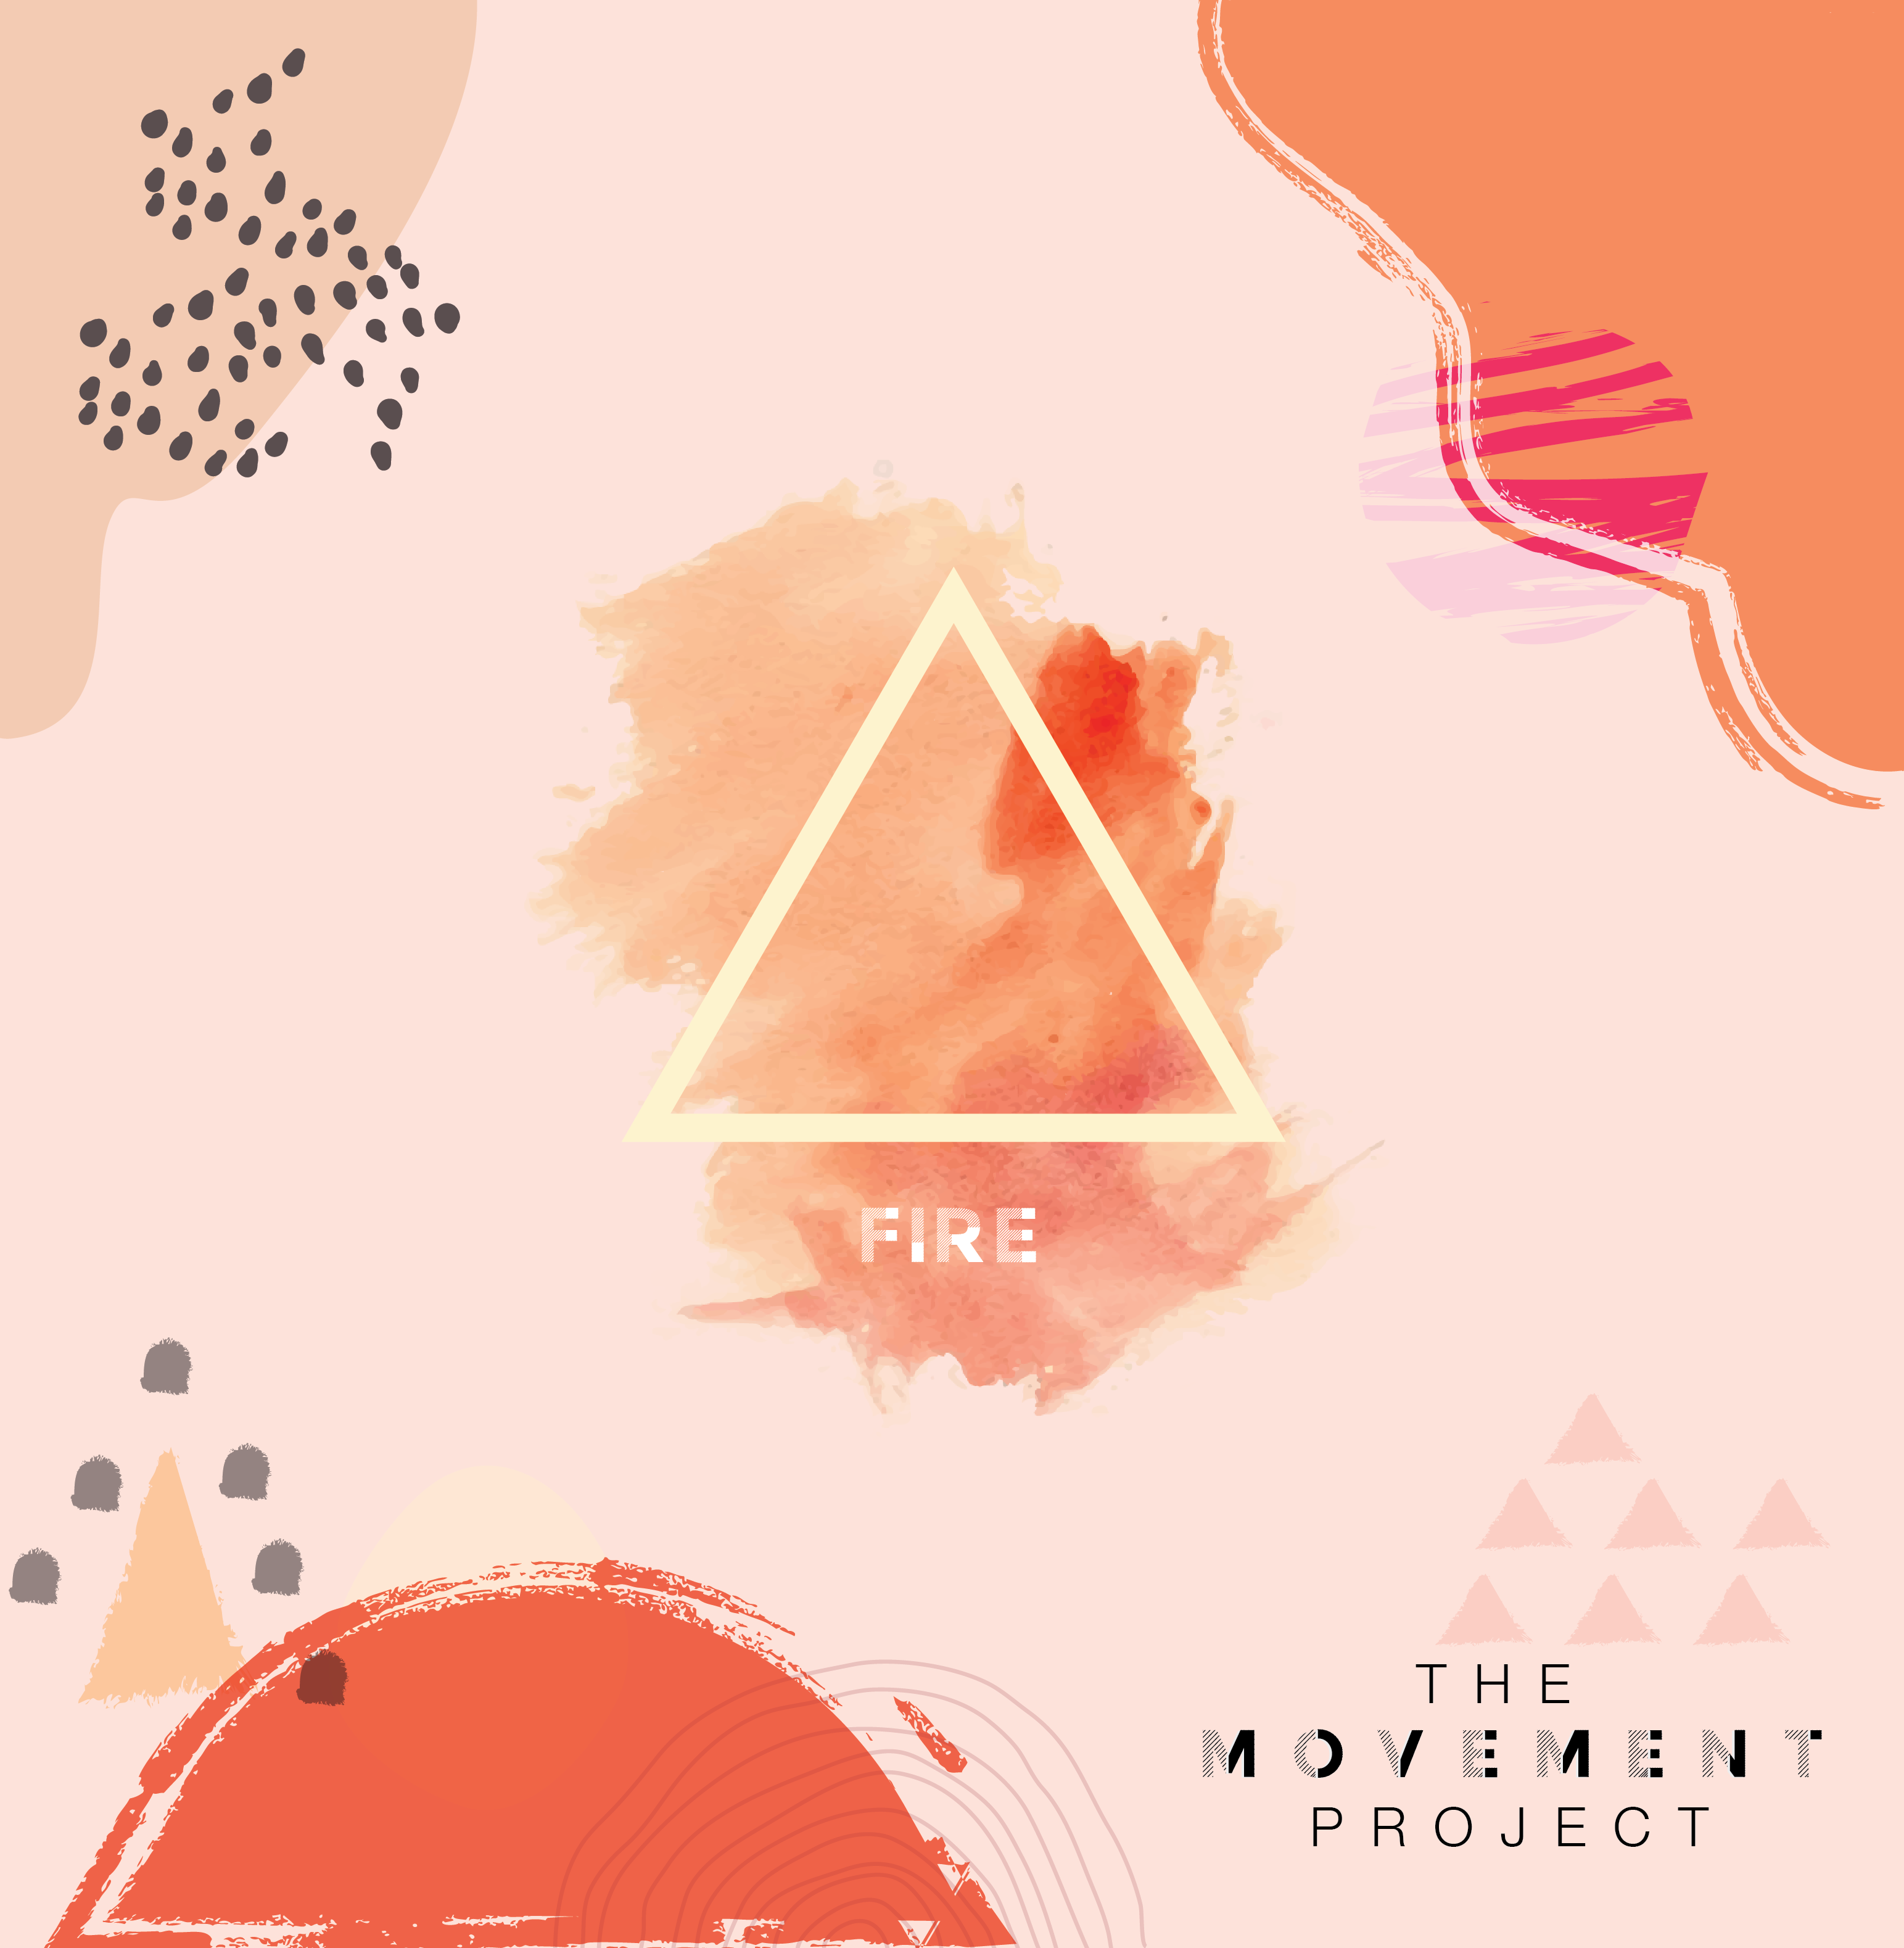 The Movement Project 2021: Embracing the Fire In Your Soul